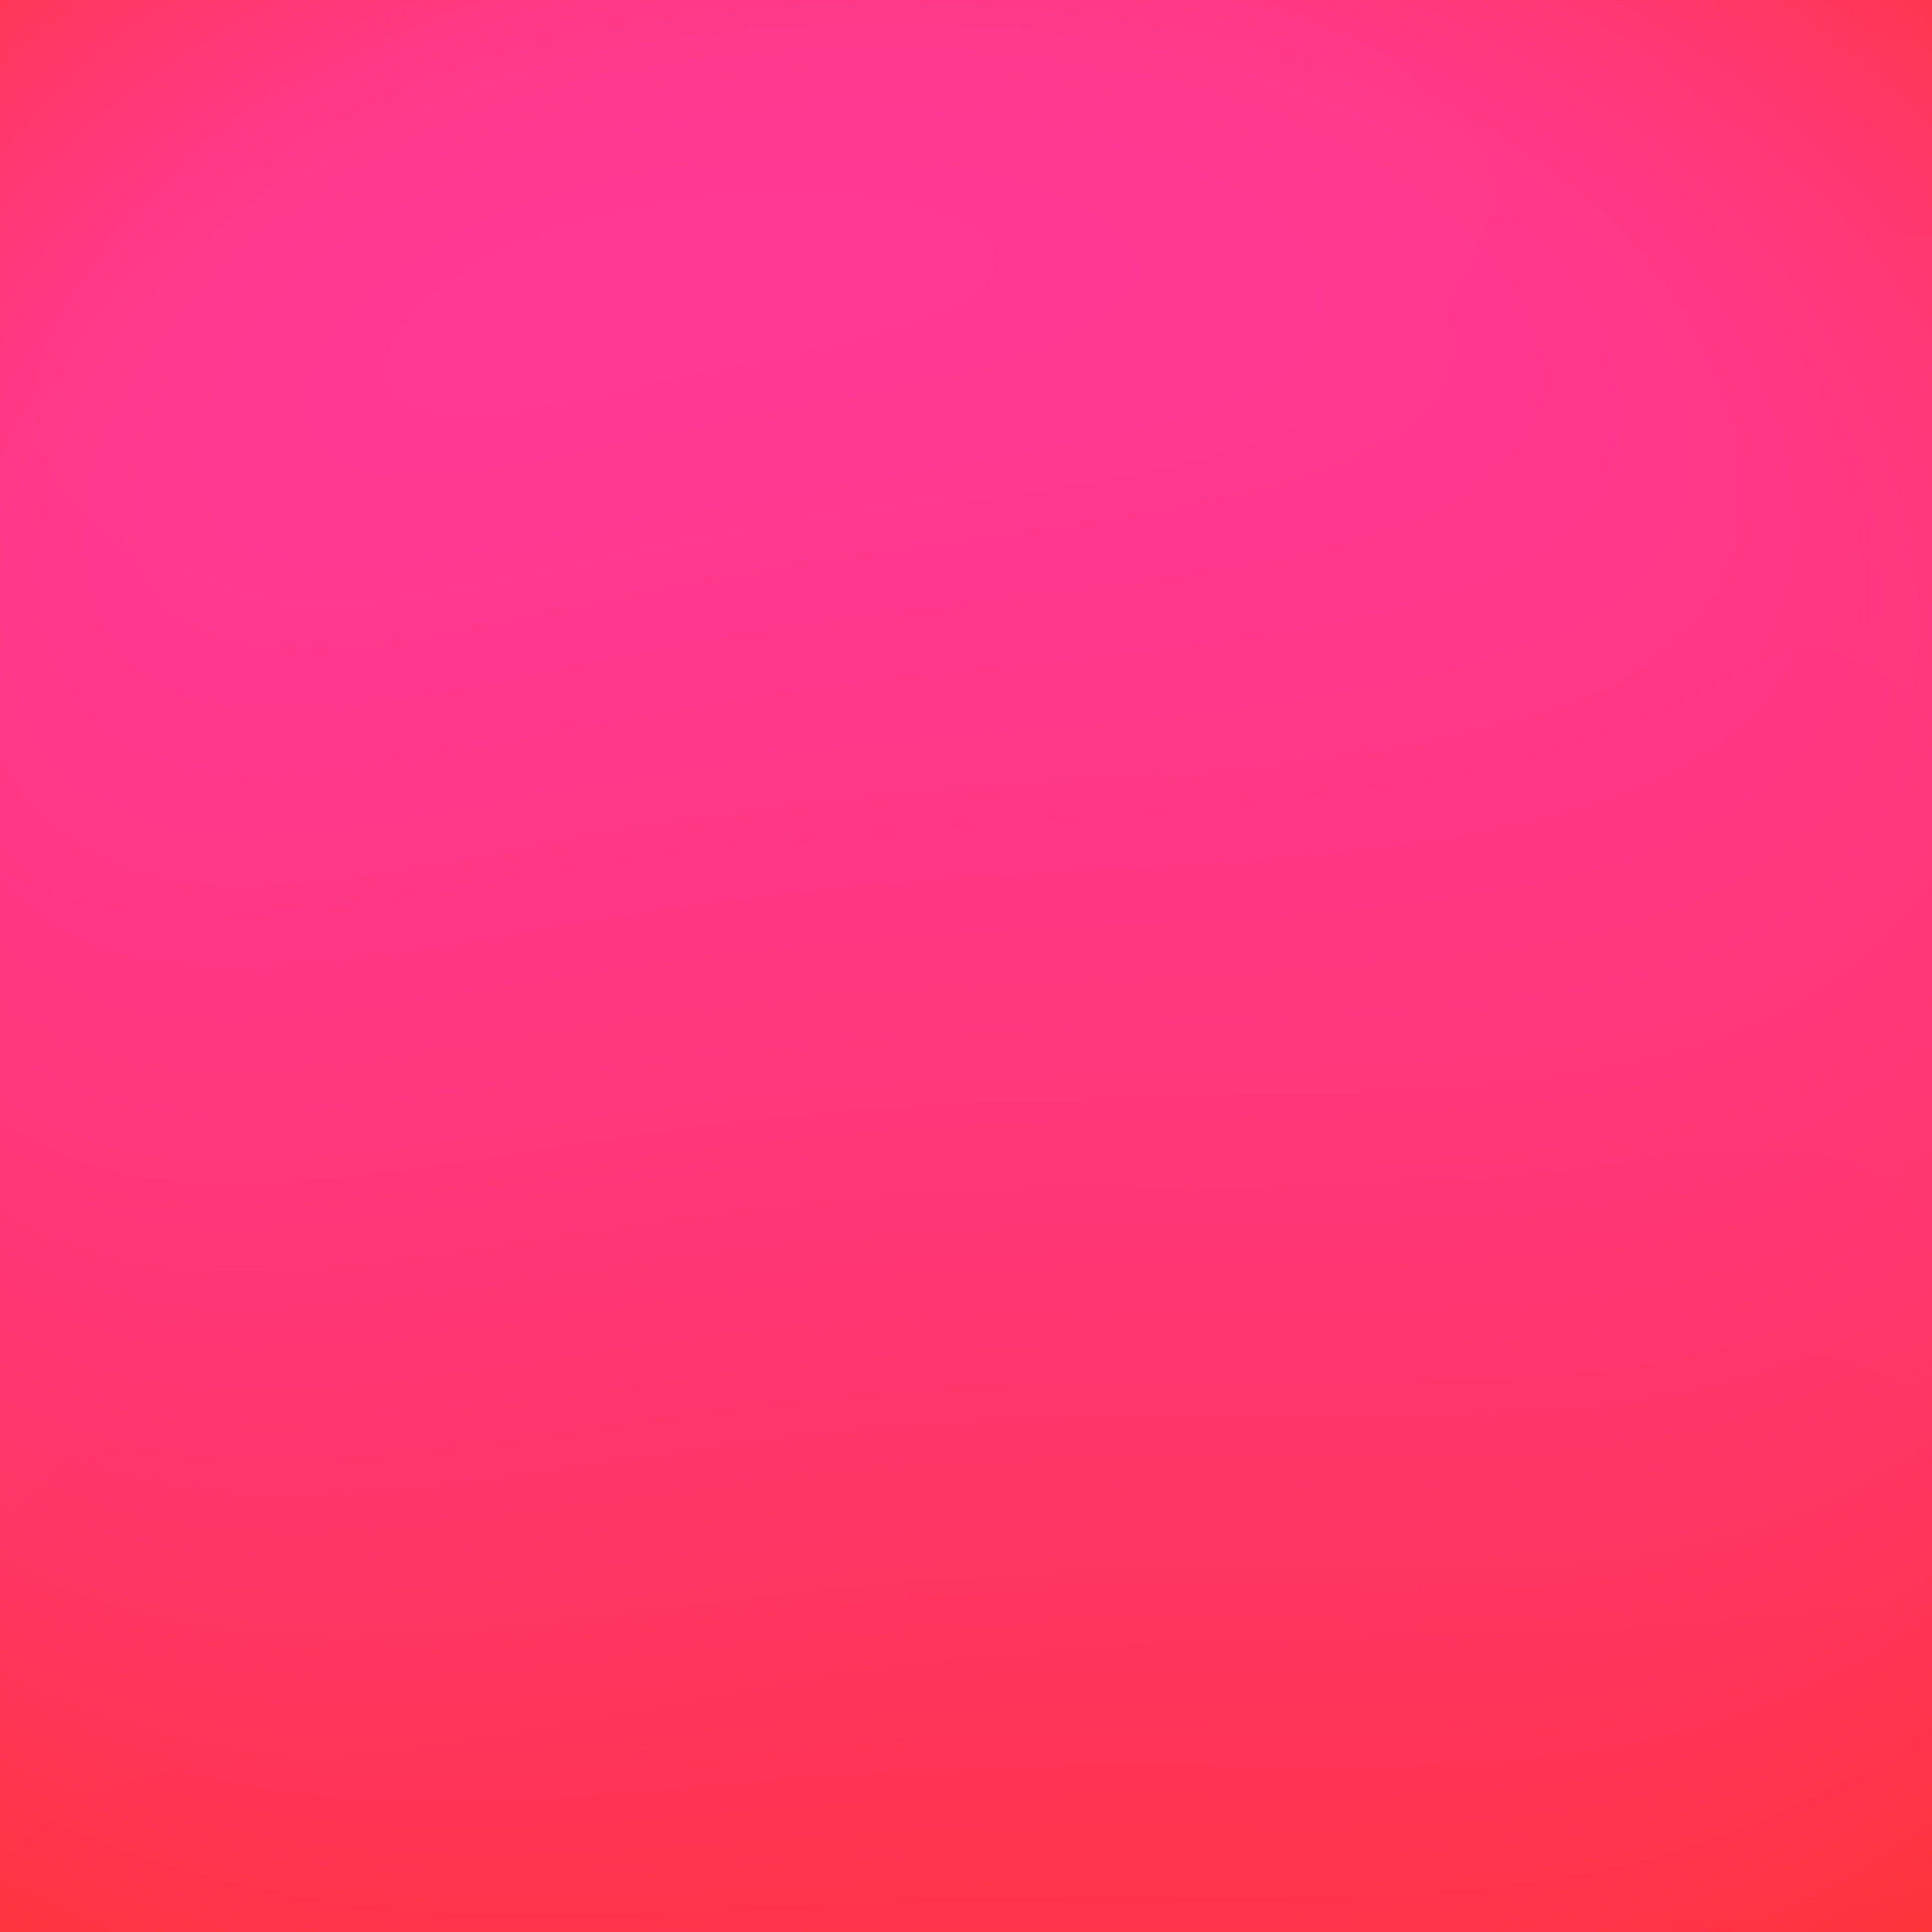 The Background For Wallpaper In Pink Color Shades Free Image